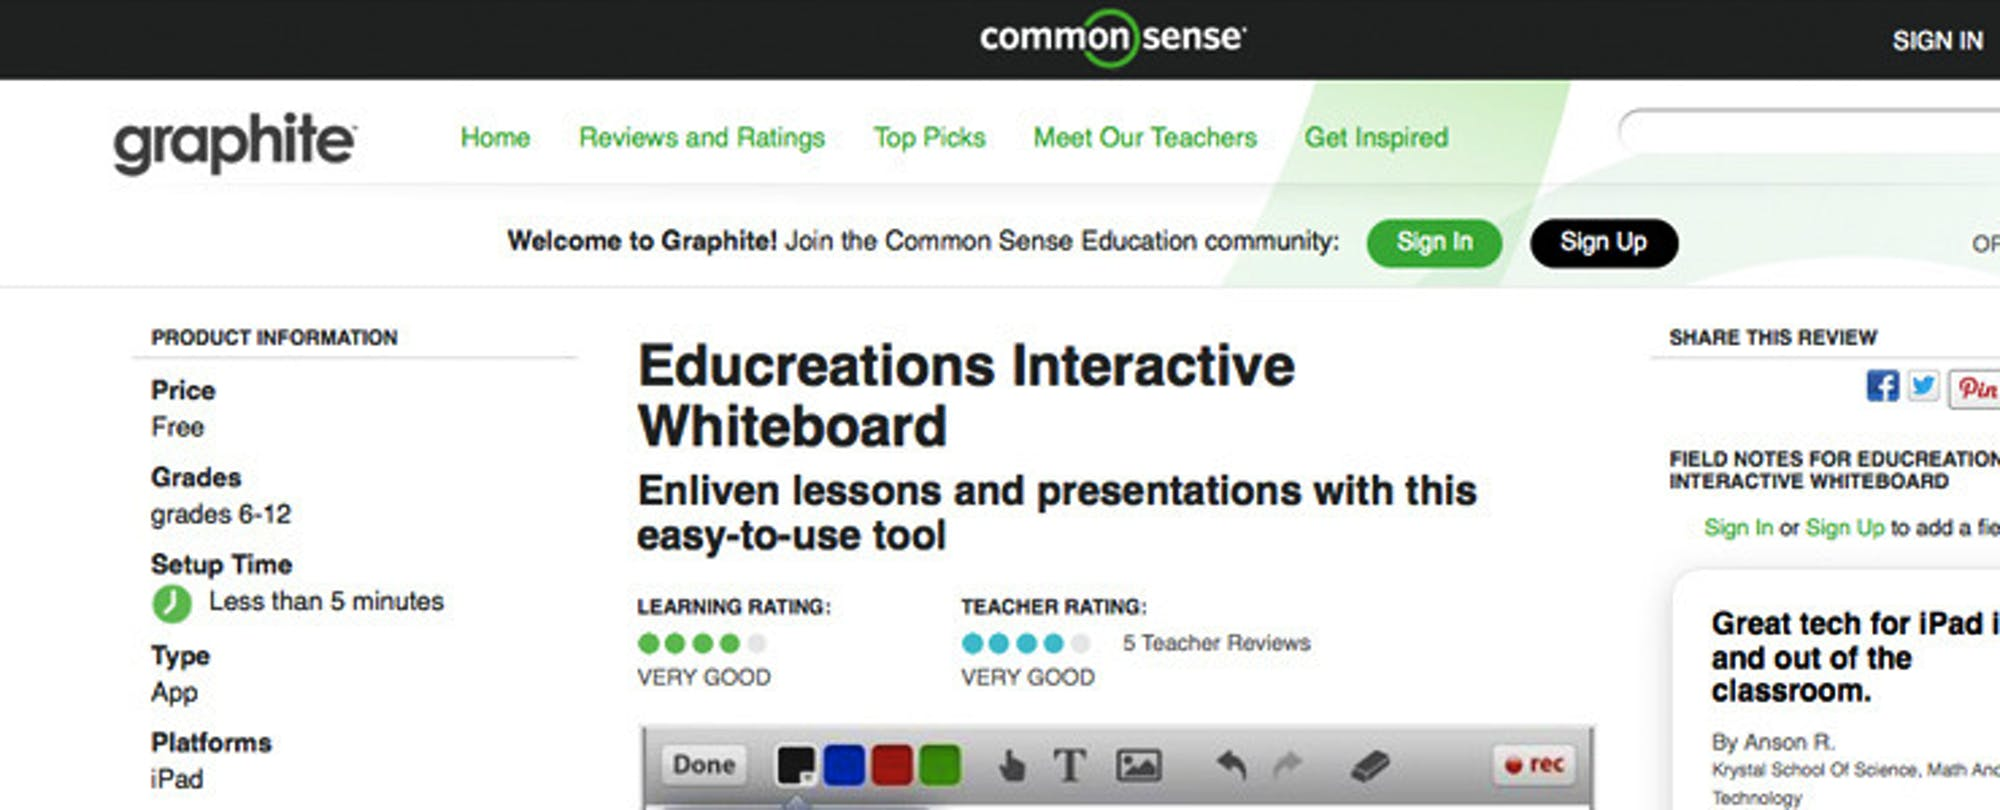 ISTE13: Common Sense Media Launches Graphite